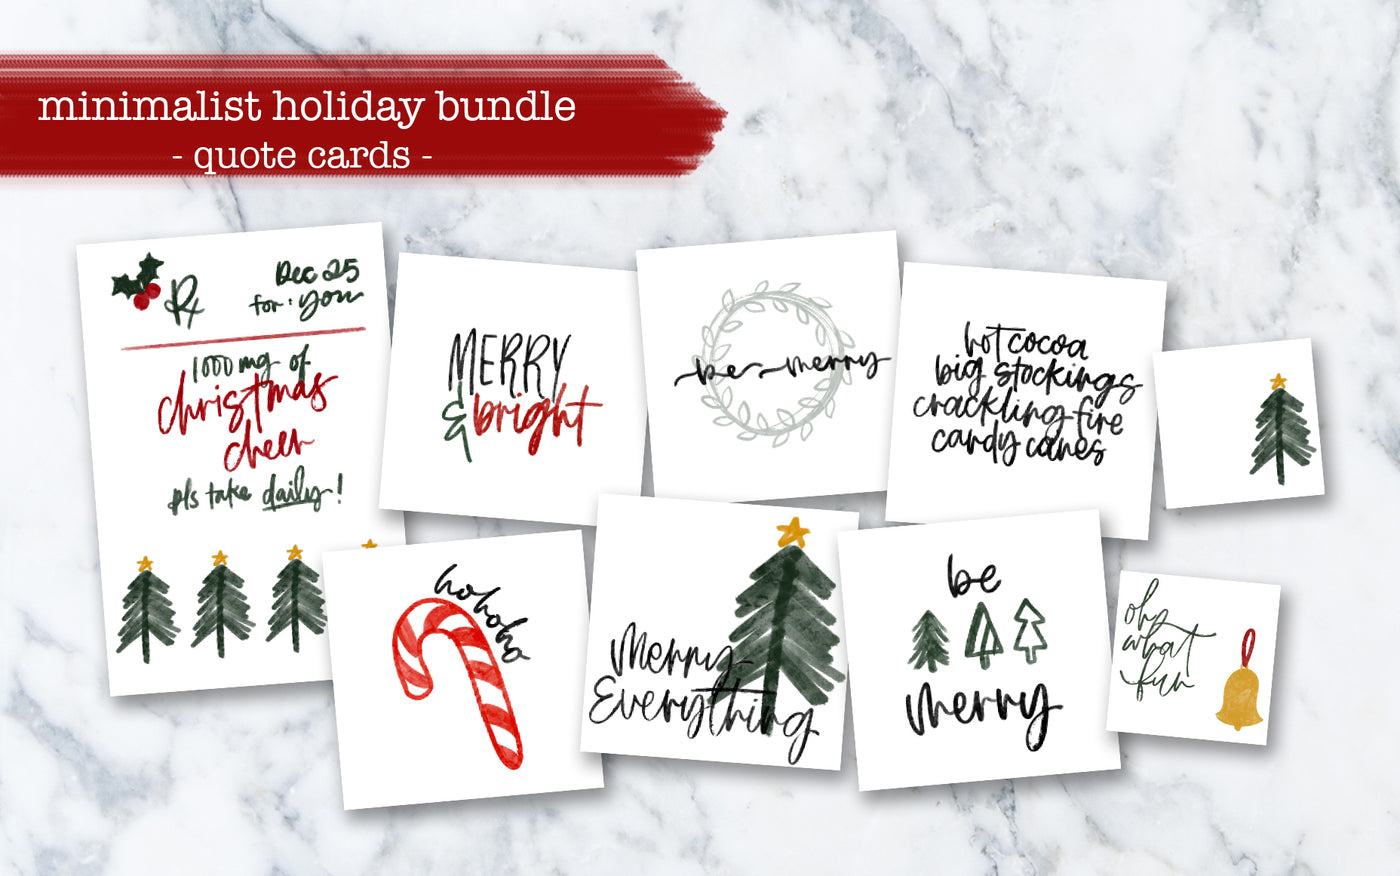 Minimalist Holiday Quote Cards - Limited Edition